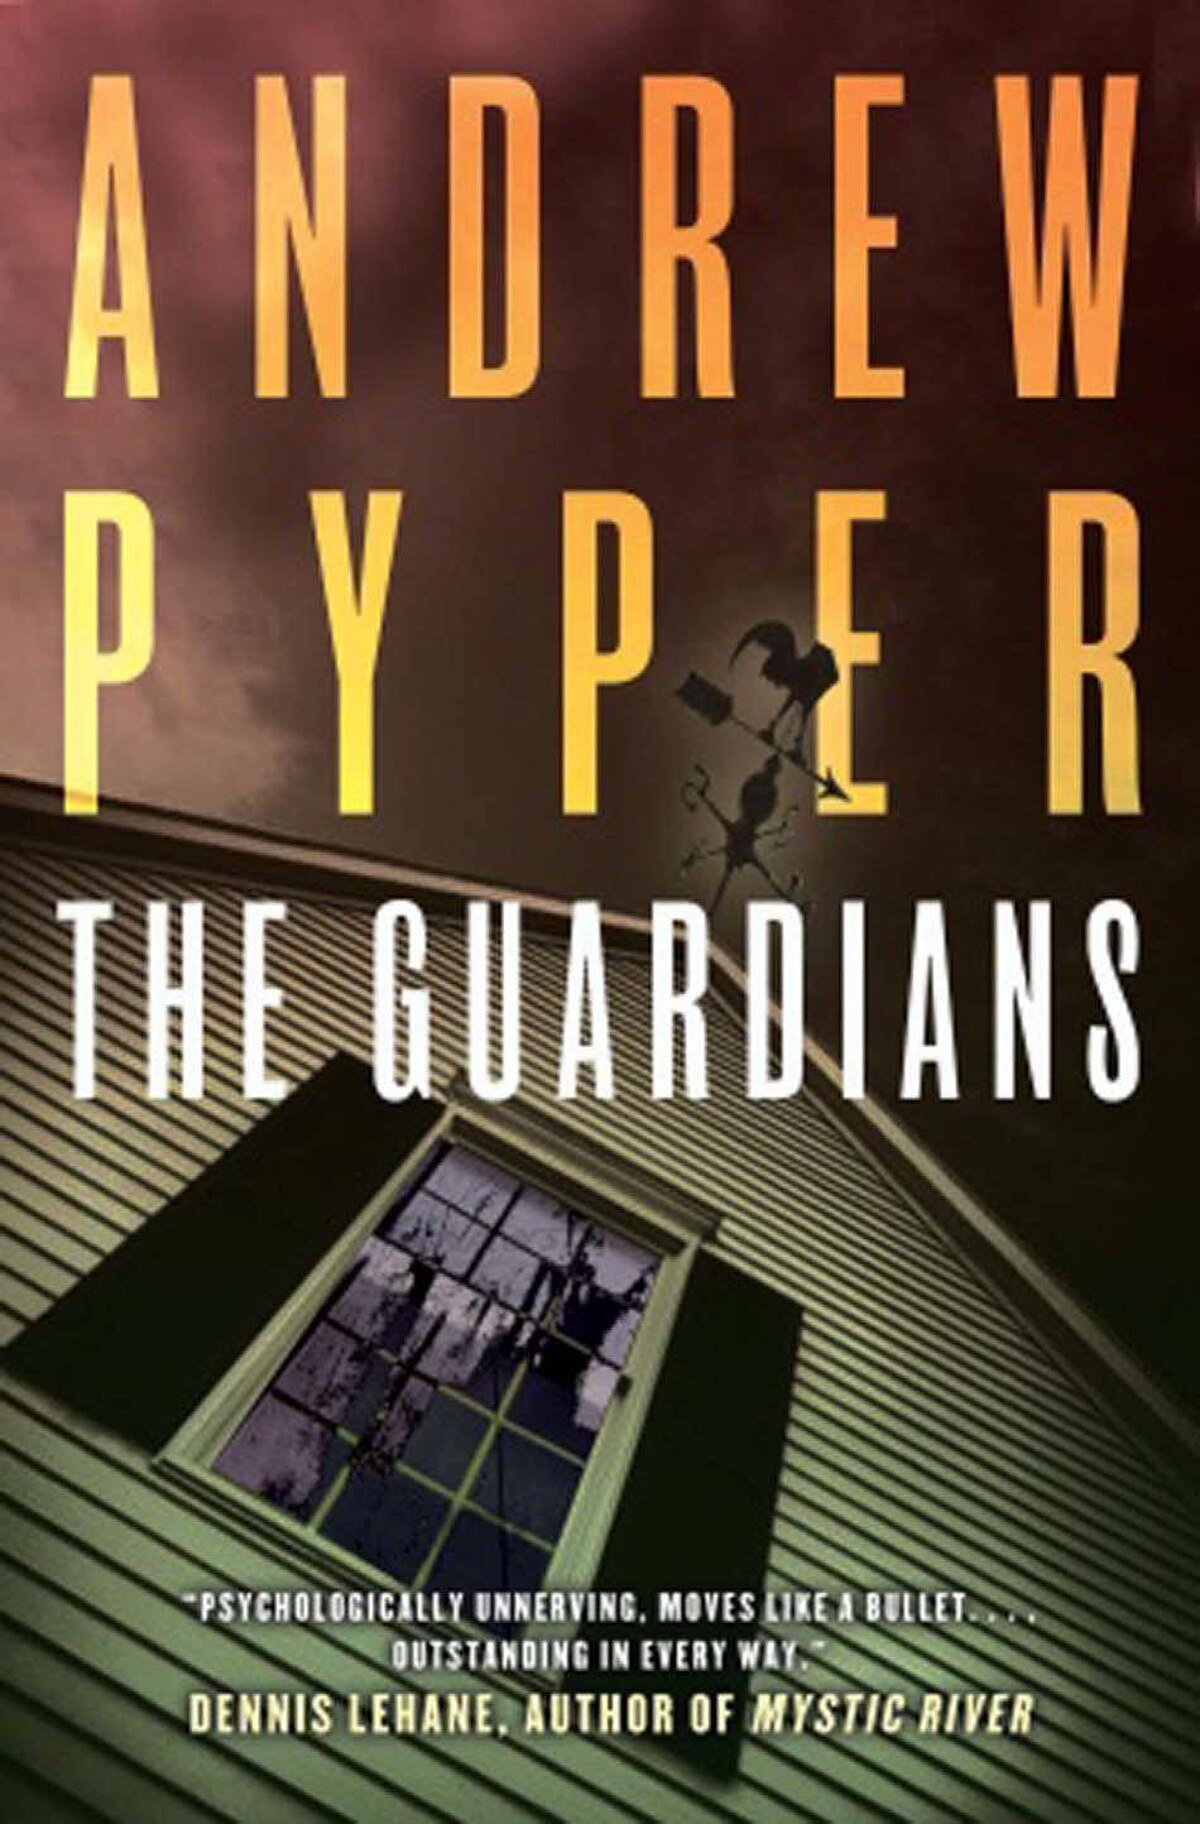 THE GUARDIANS By Andrew Pyper (Doubleday Canada) Trevor, Randy, Ben and Carl were friends and schoolmates. One day, a teacher disappeared; seeking to solve the mystery, they entered Thurman House, where the unspeakable happened. Twenty-four years later, Trevor is awakened with the news that Ben has hanged himself. They return for Ben's funeral, but the past begins to repeat itself when a young woman goes missing. – Christy Ann Conlin